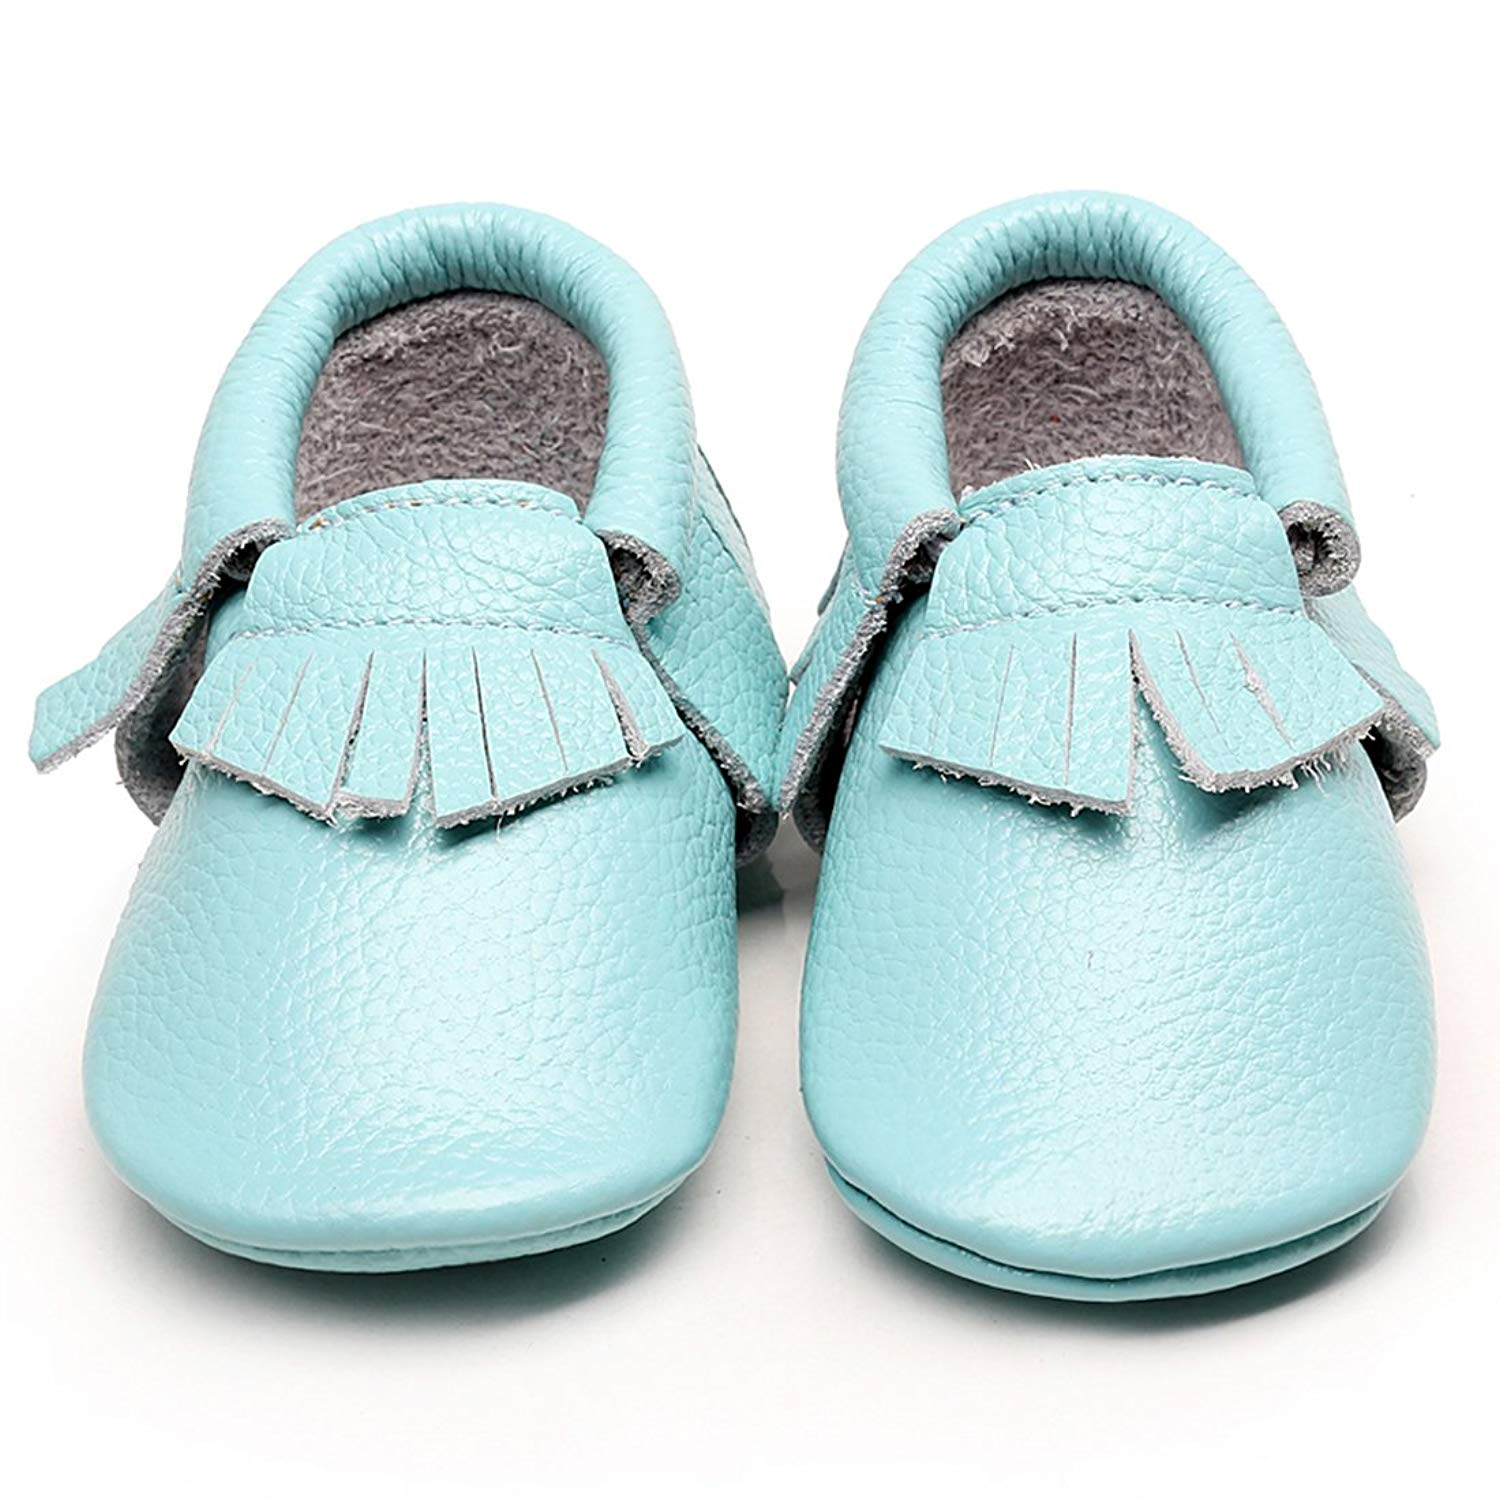 b73b5a06d442 Get Quotations · WAZZIT Leather Baby Moccasins Boys Girls Crib Toddler Shoes  Soft Sole Tassels Prewalker